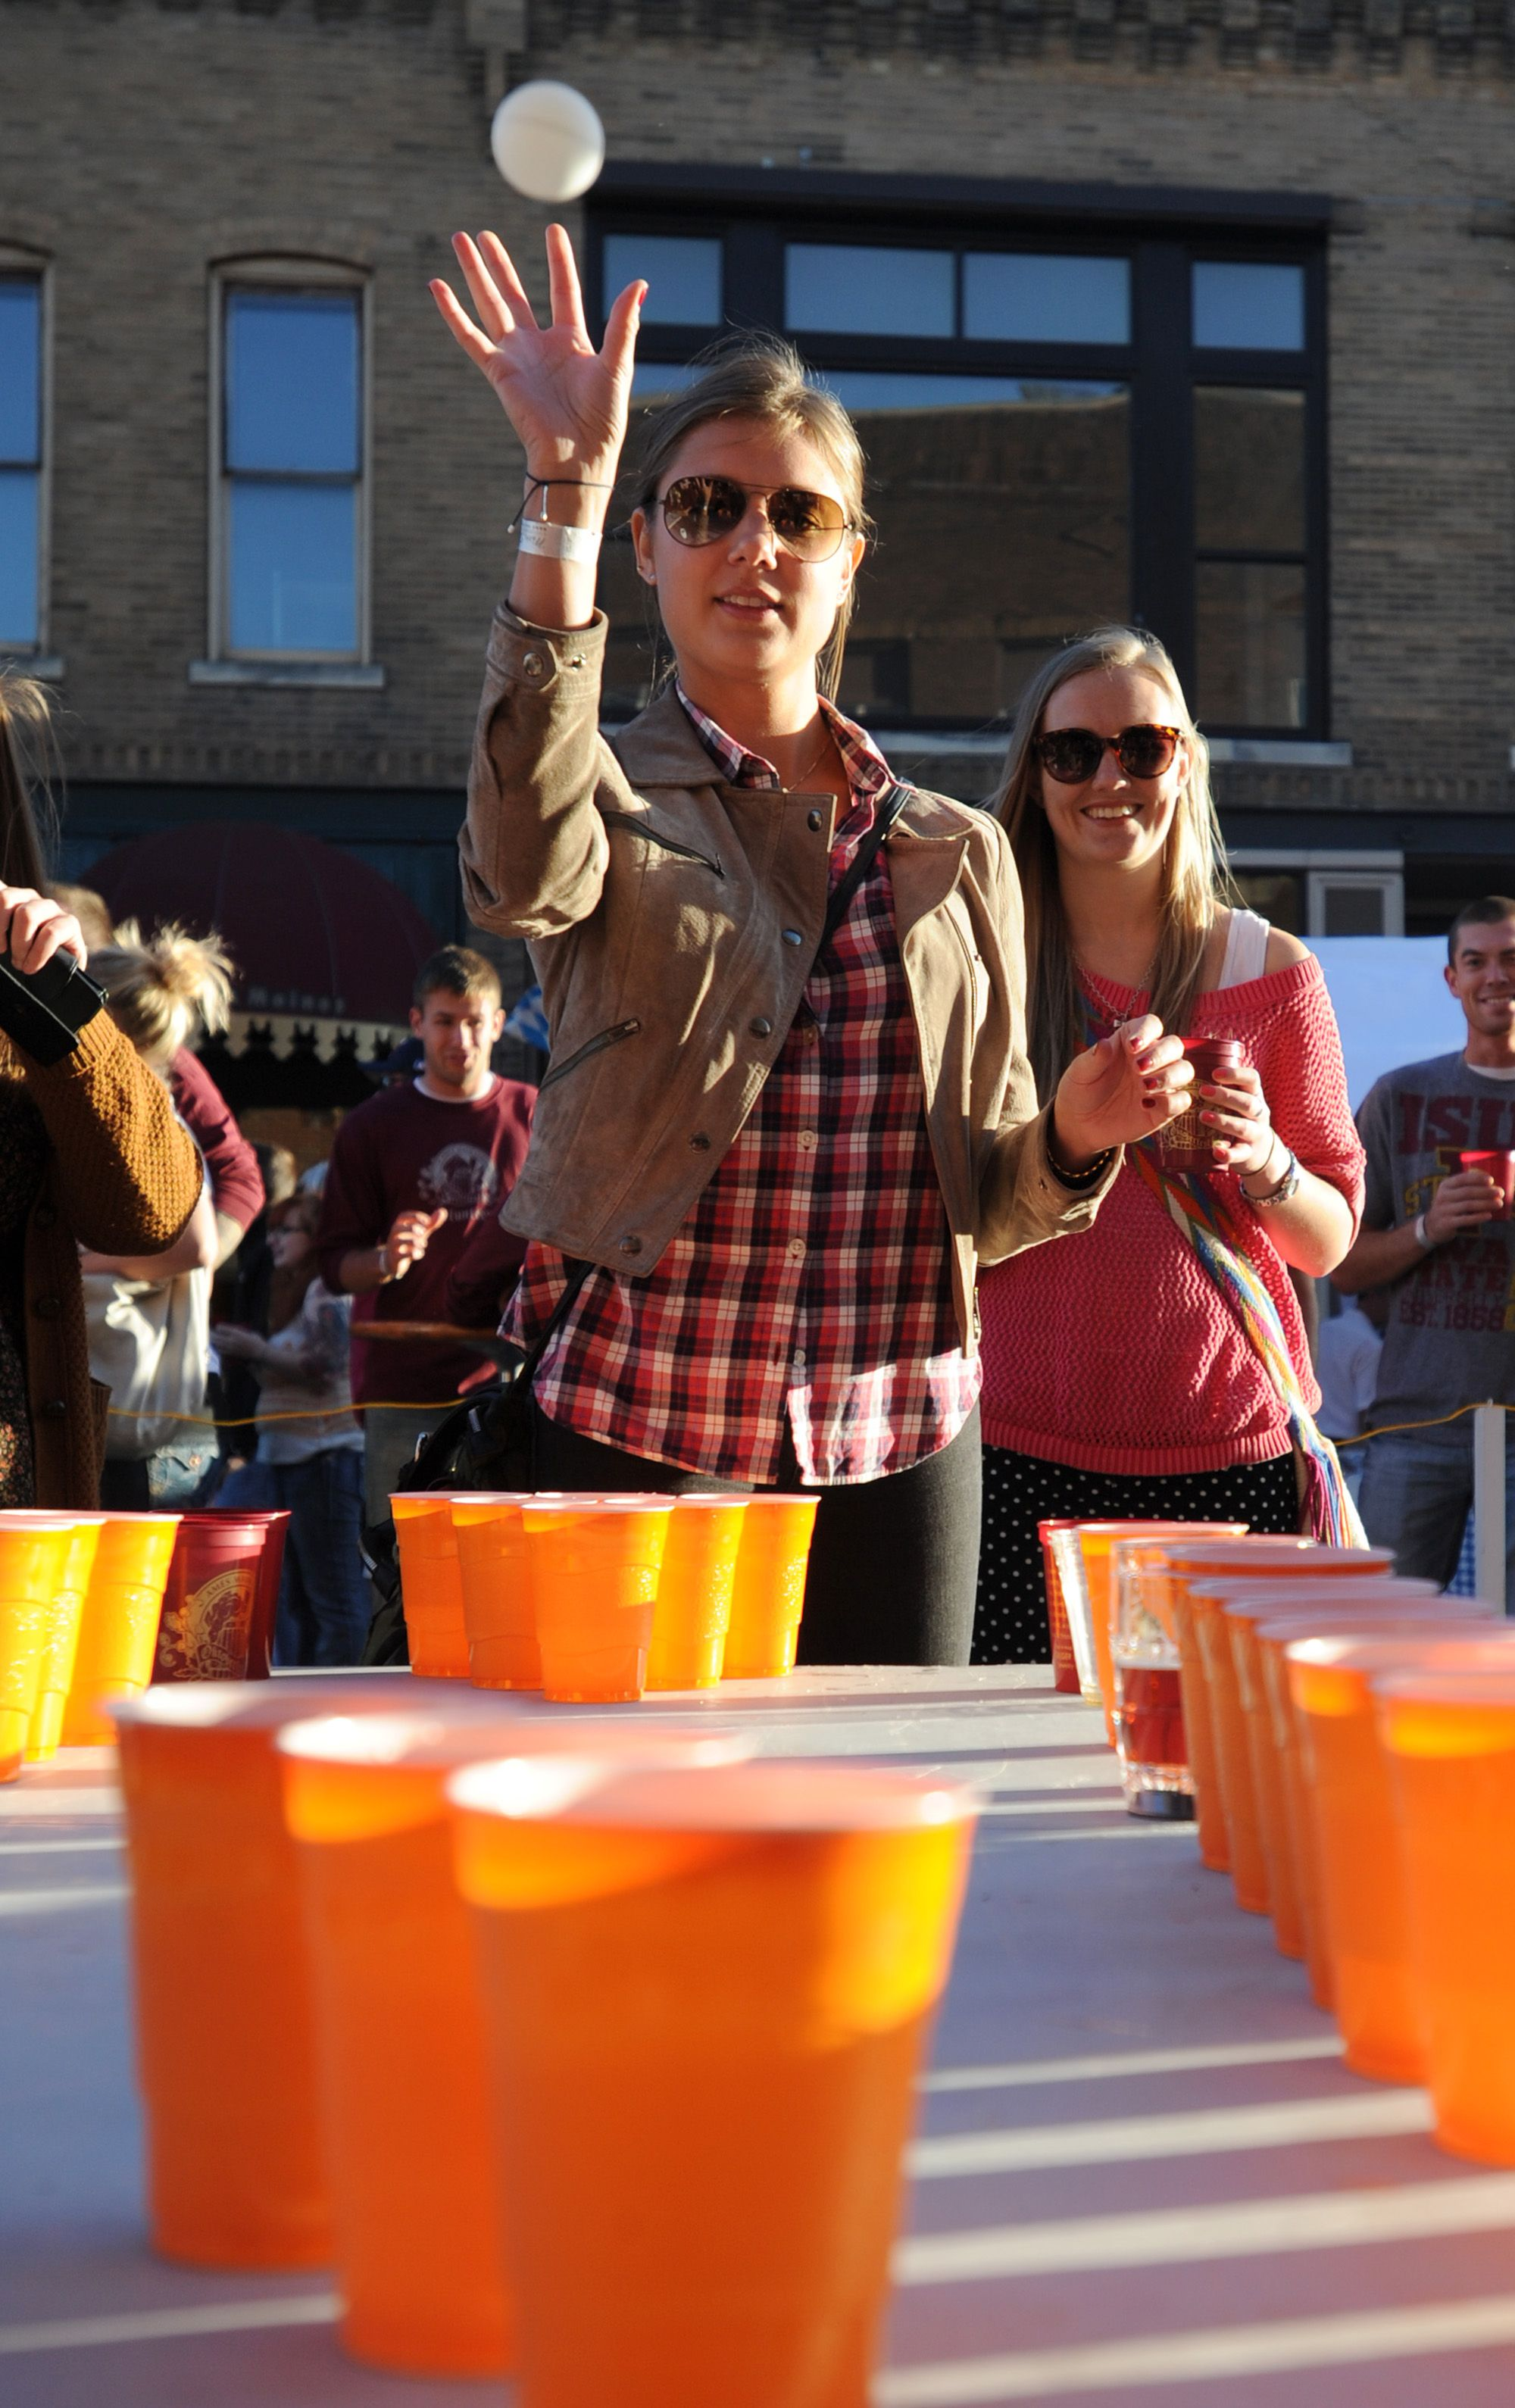 Lina Rylander throws a ping pong ball into a cup during a